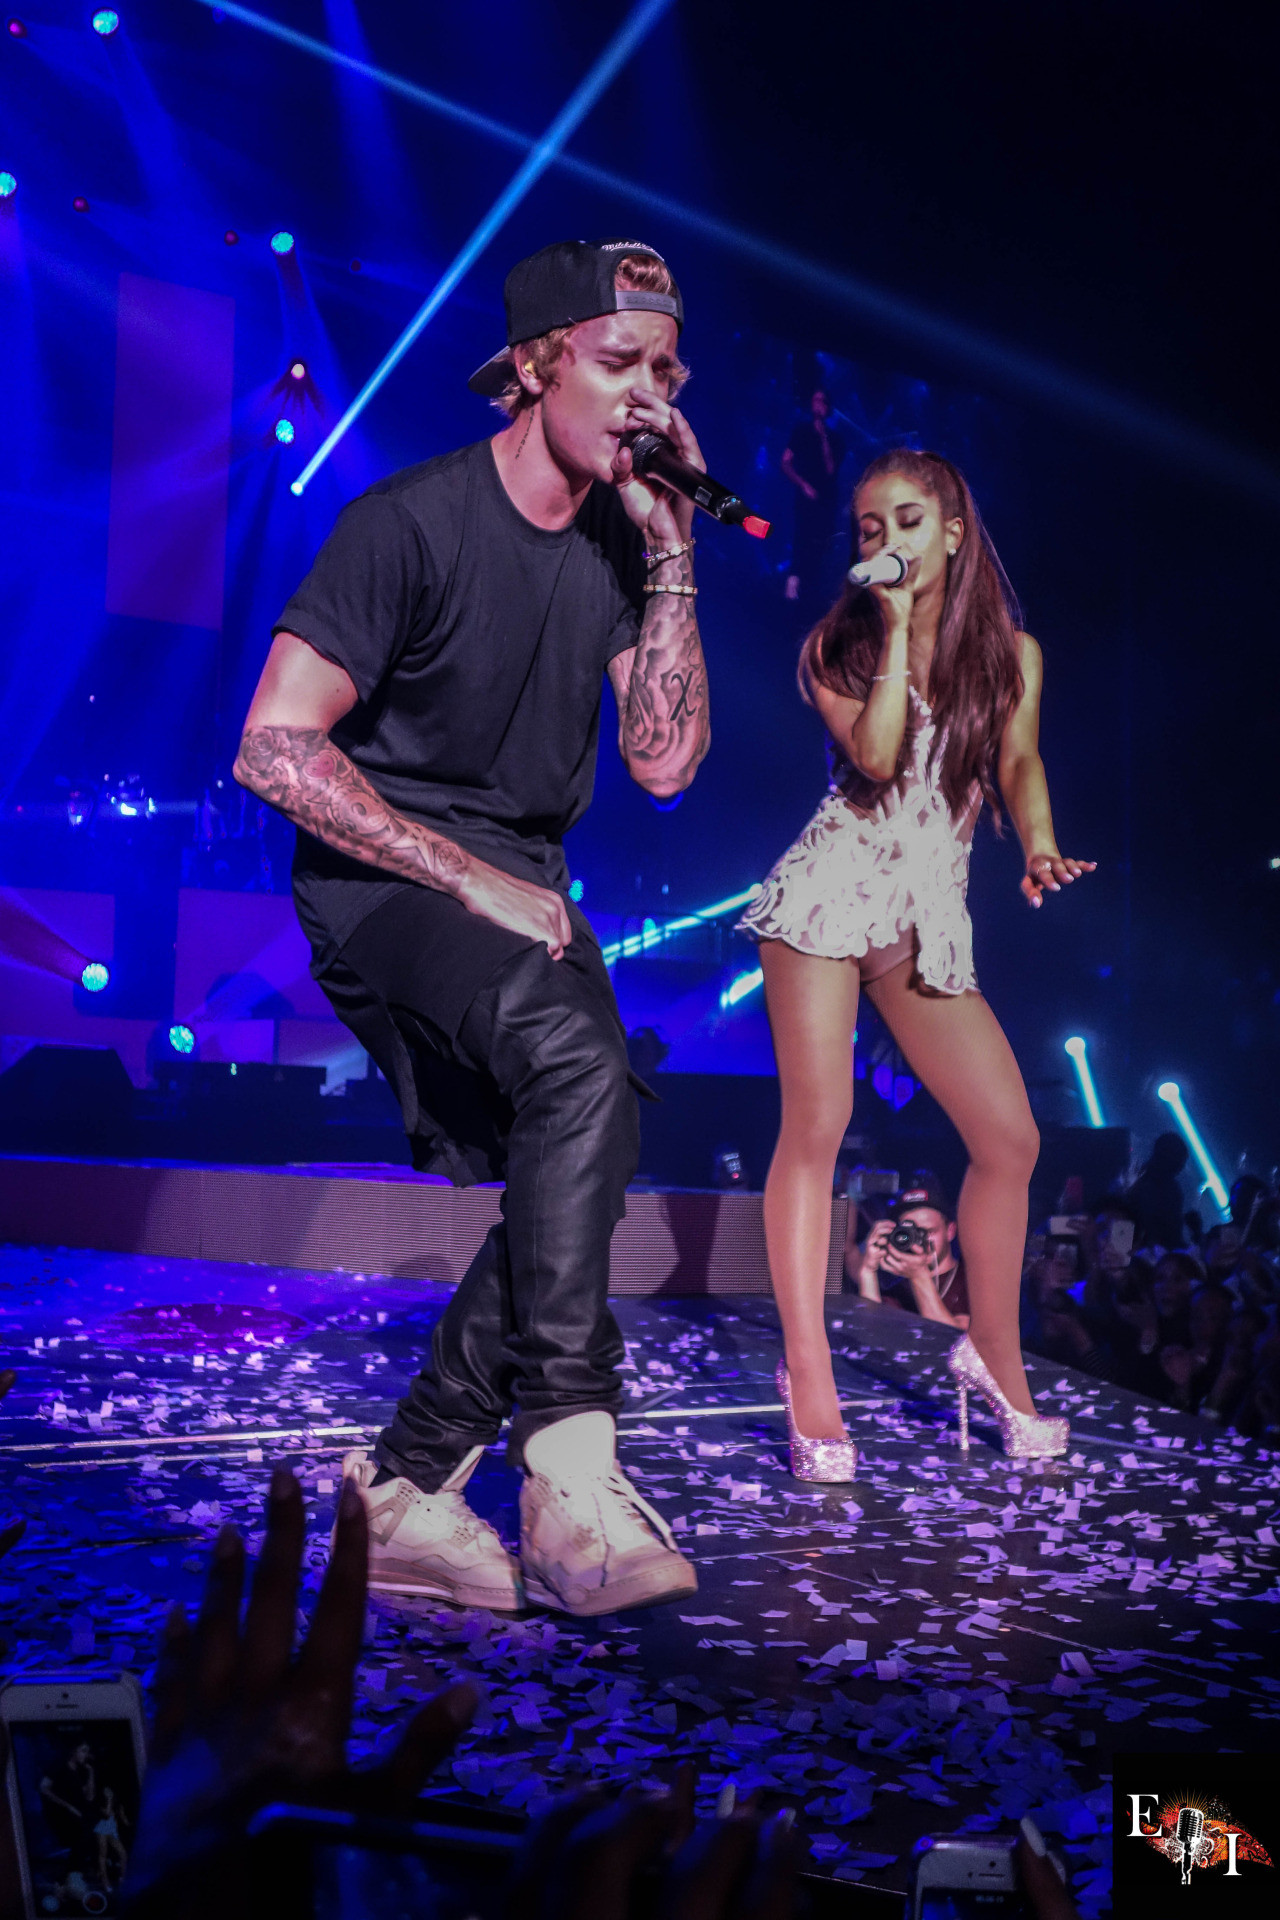 1280x1920 Ariana Grande: Performing with Justin Bieber -10 - Full Size